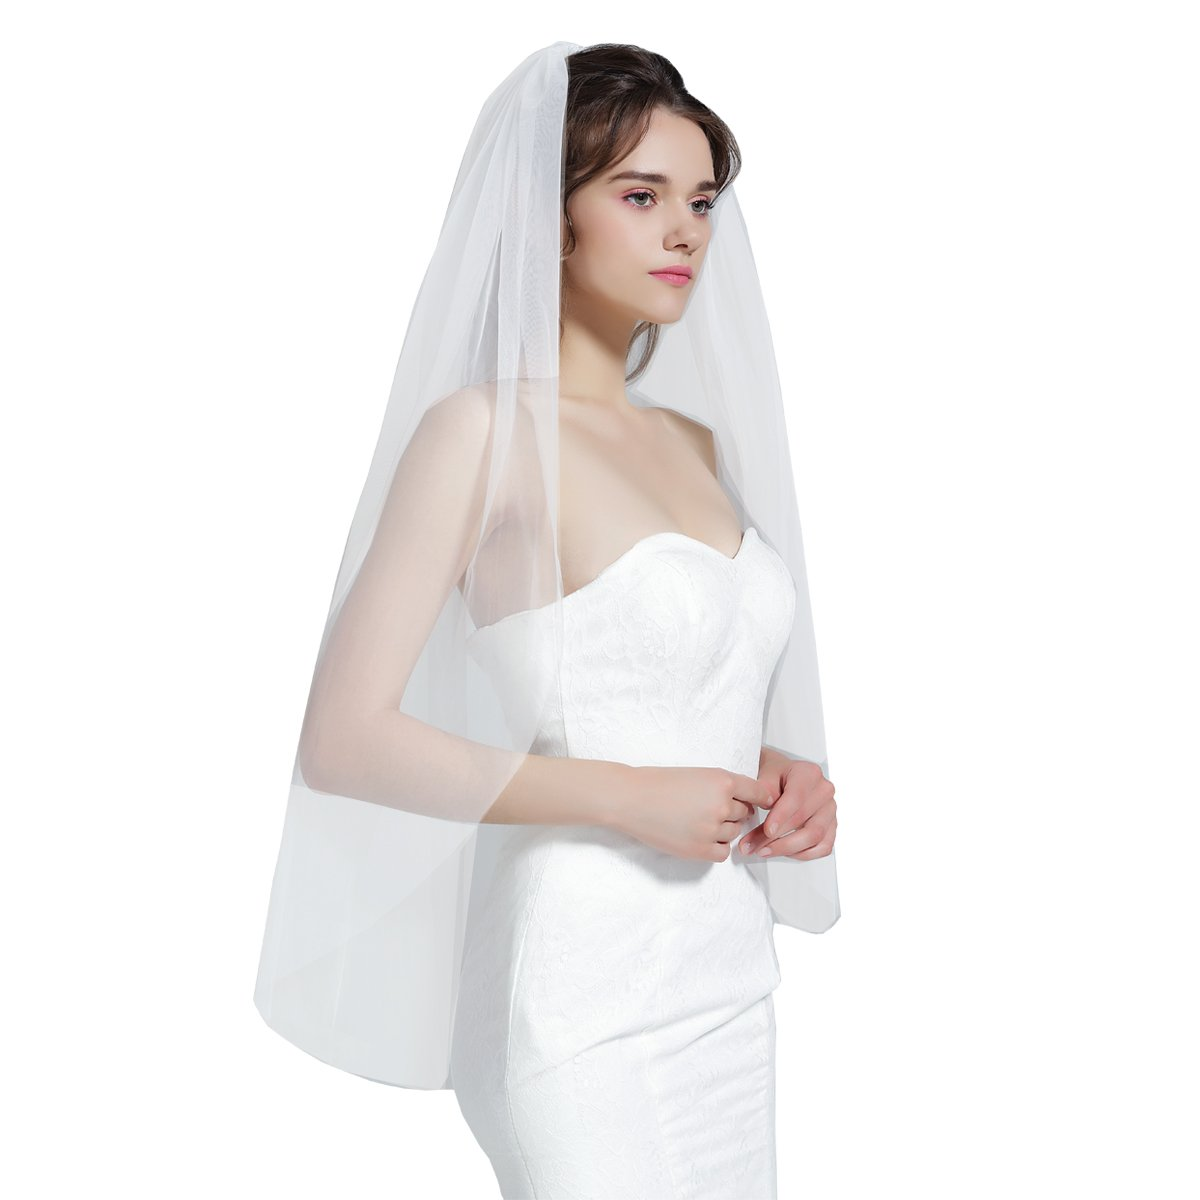 Wedding Bridal Veil with Comb 1 Tier Cut Edge Waltz Length Ivory